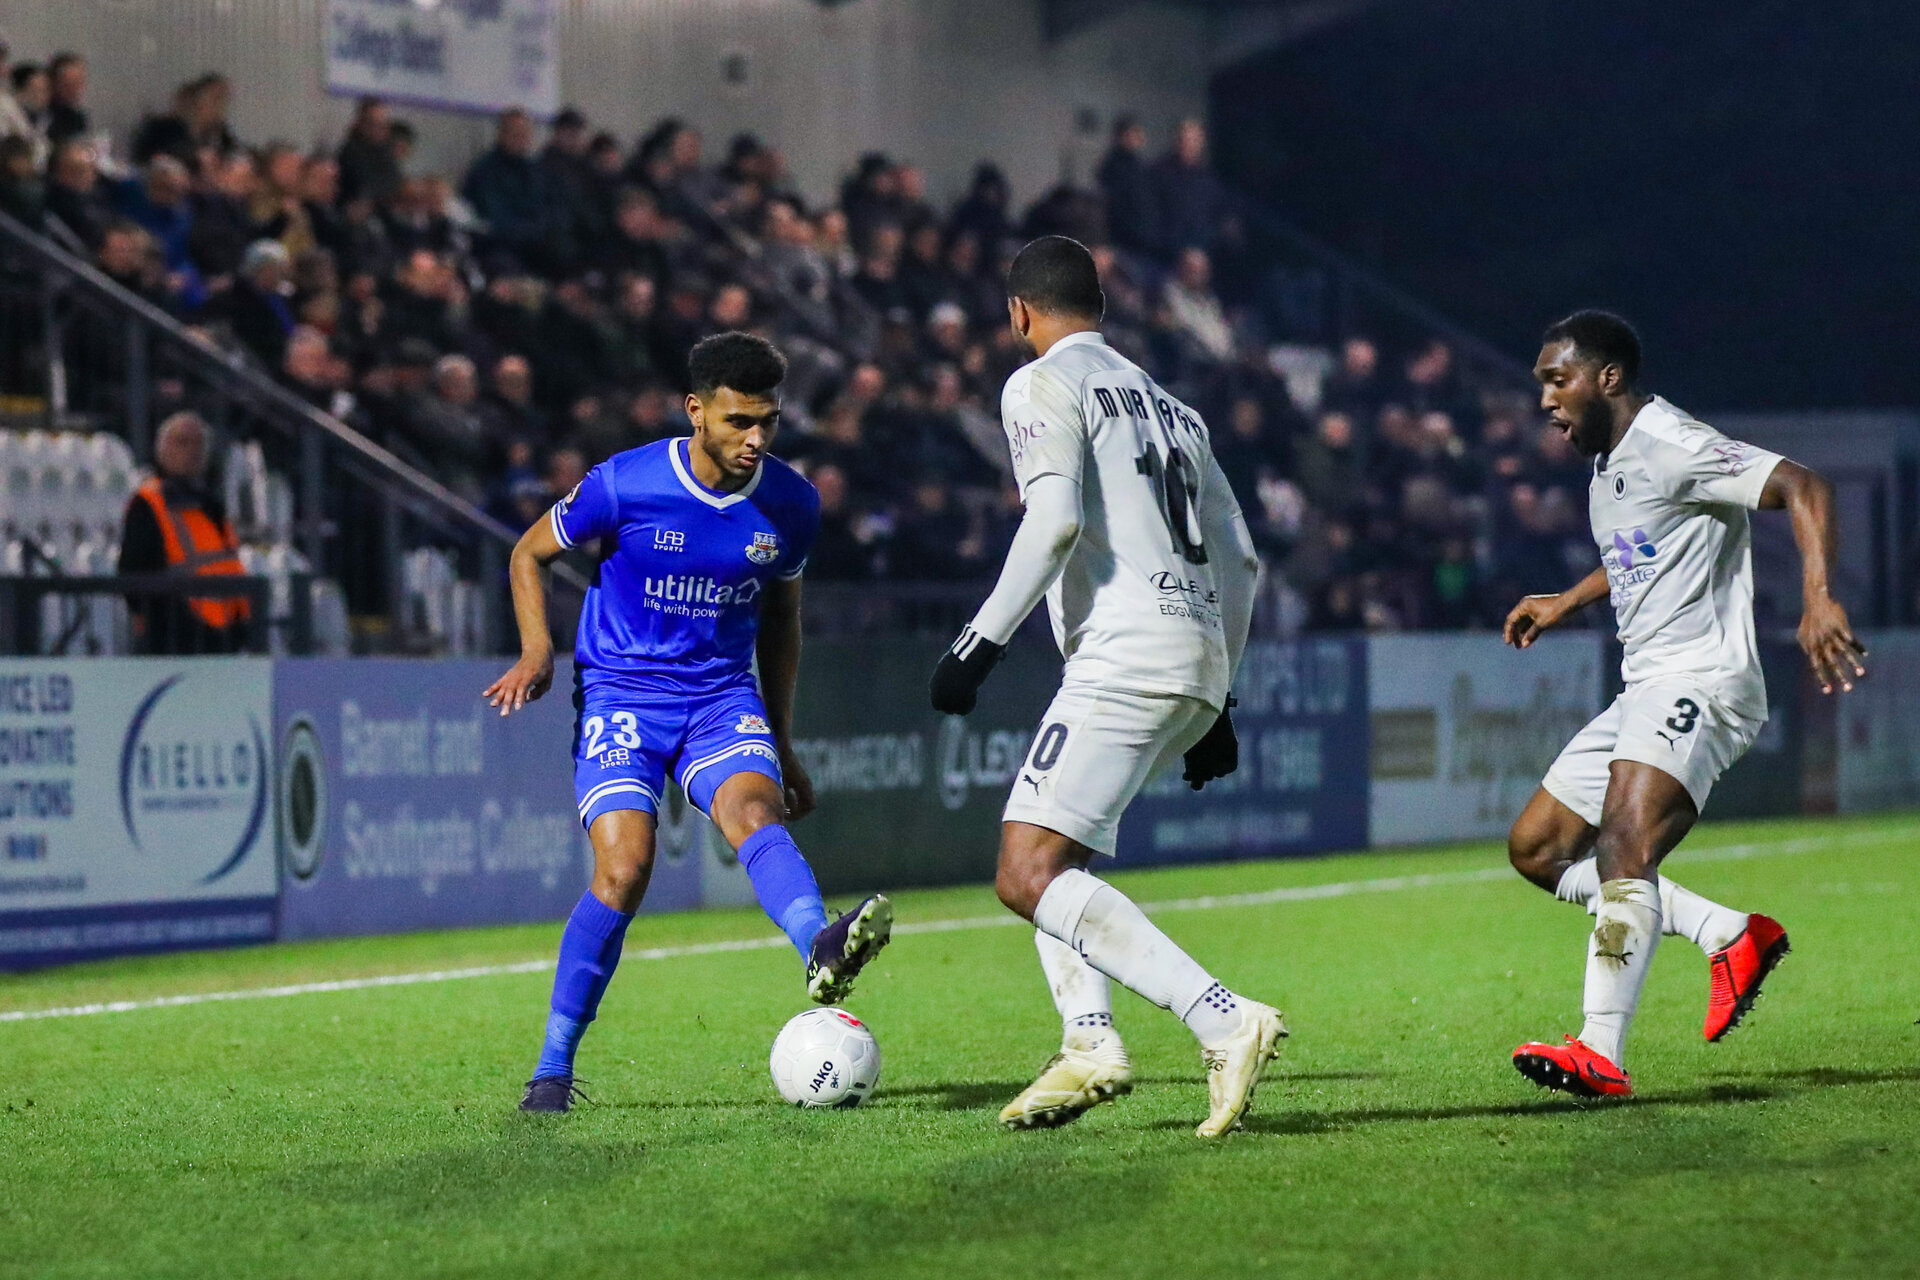 BOREHAMWOOD, ENGLAND - DECEMBER 28: Marcus Barnes of Eastleigh FC in possession during the Vanarama National League match between Boreham Wood and Eastleigh FC at the Meadow Park on December 28, 2019 in Borehamwood, England